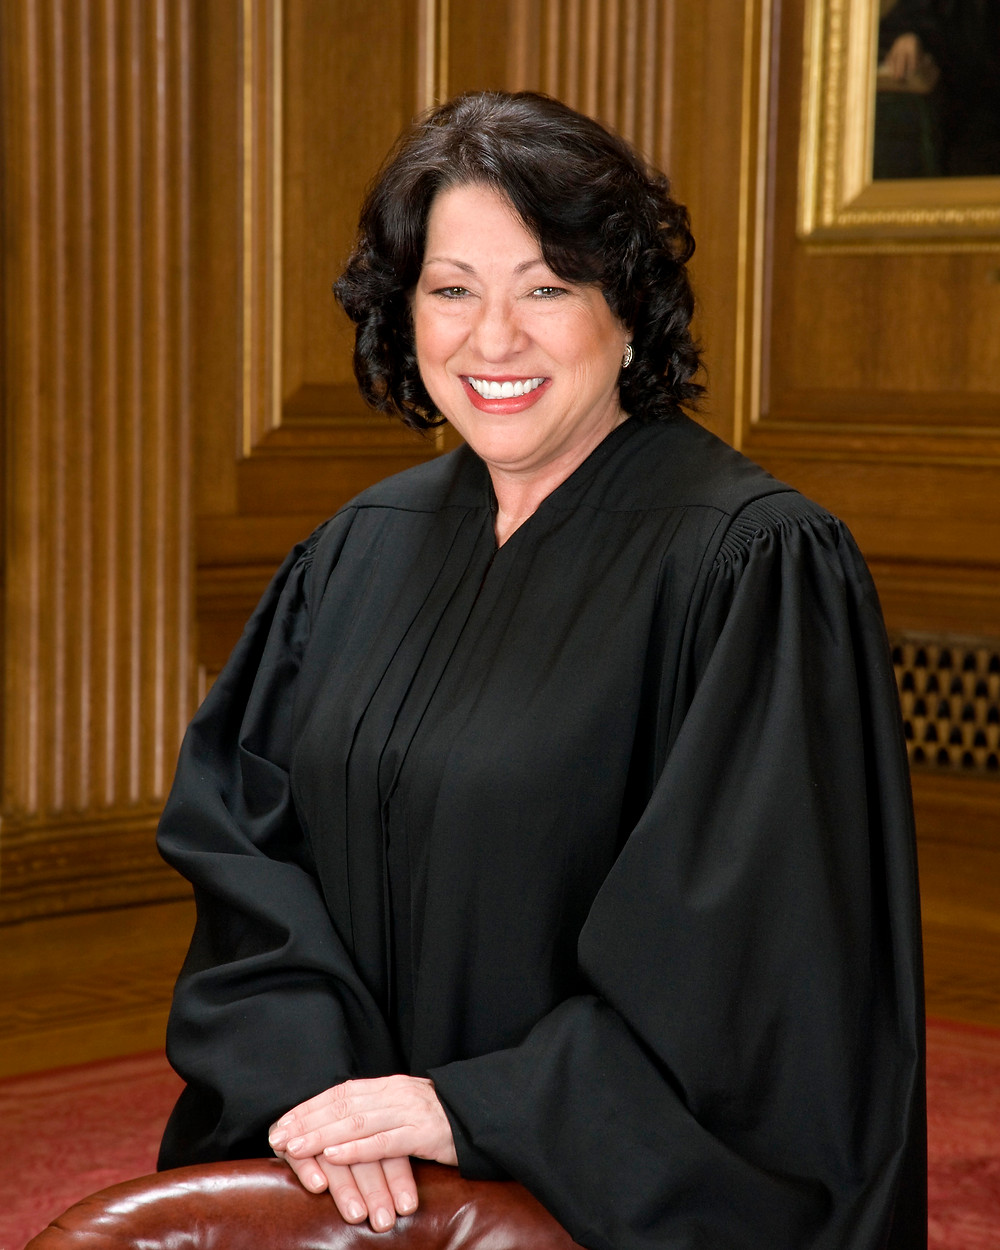 Supreme Court Justice Sonia Sotomayor. Public Domain.